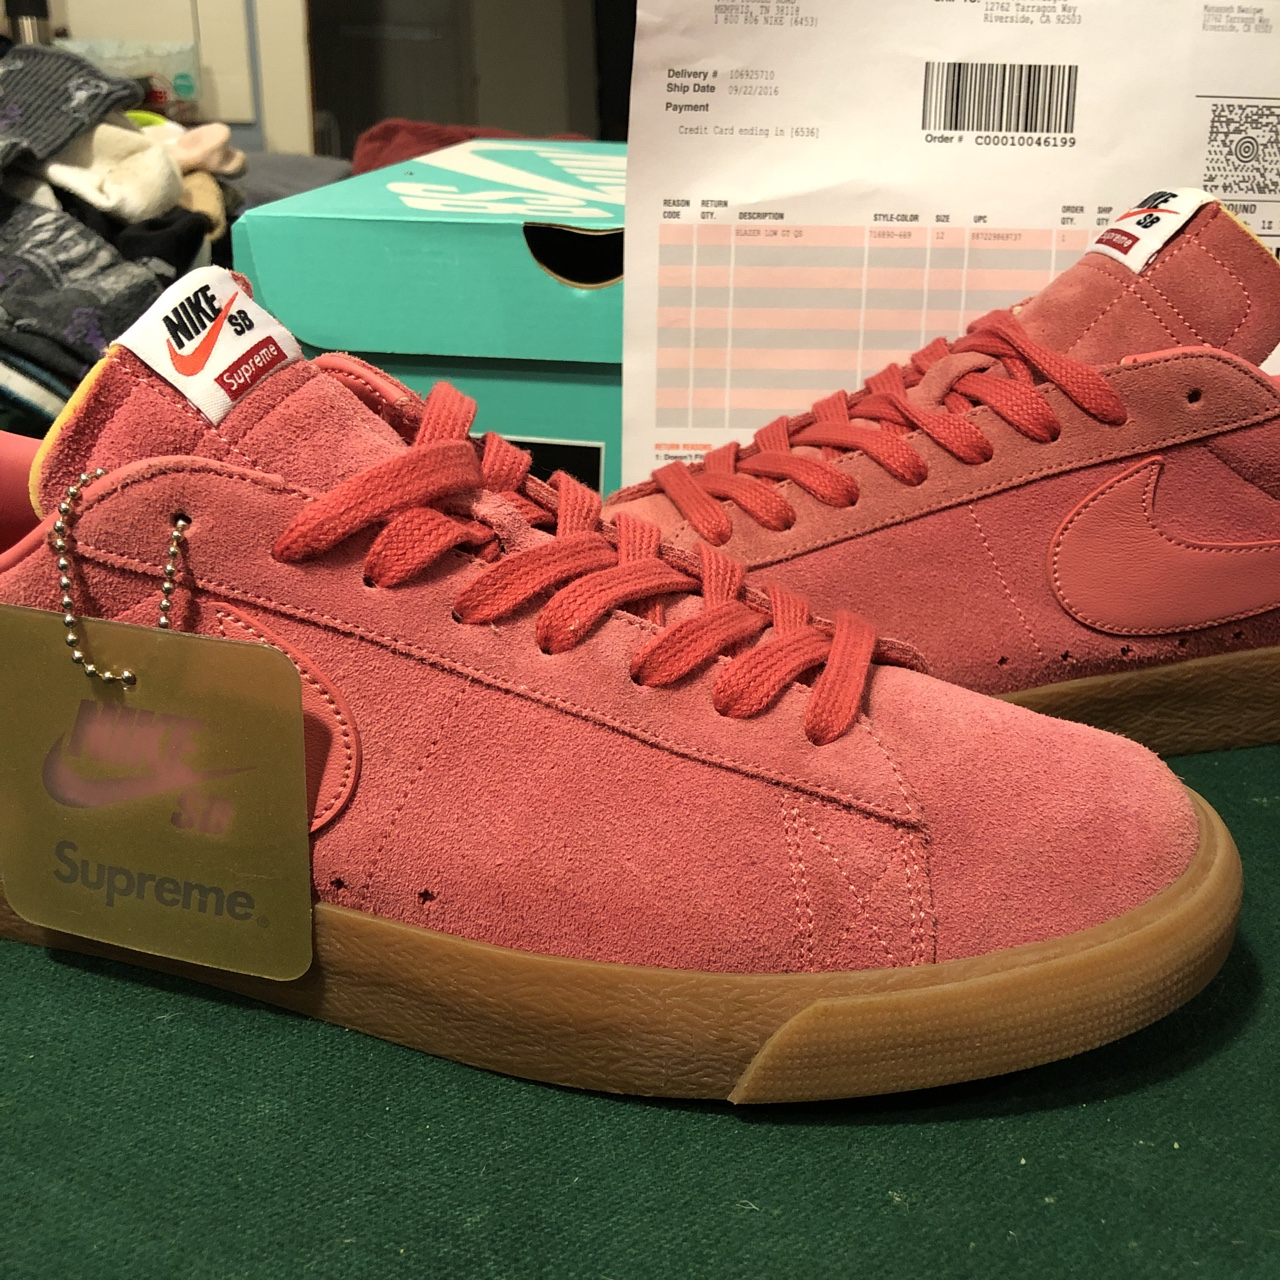 NIKE X SUPREME Blazer Low Gt QS Size Men's 12 Worn Depop